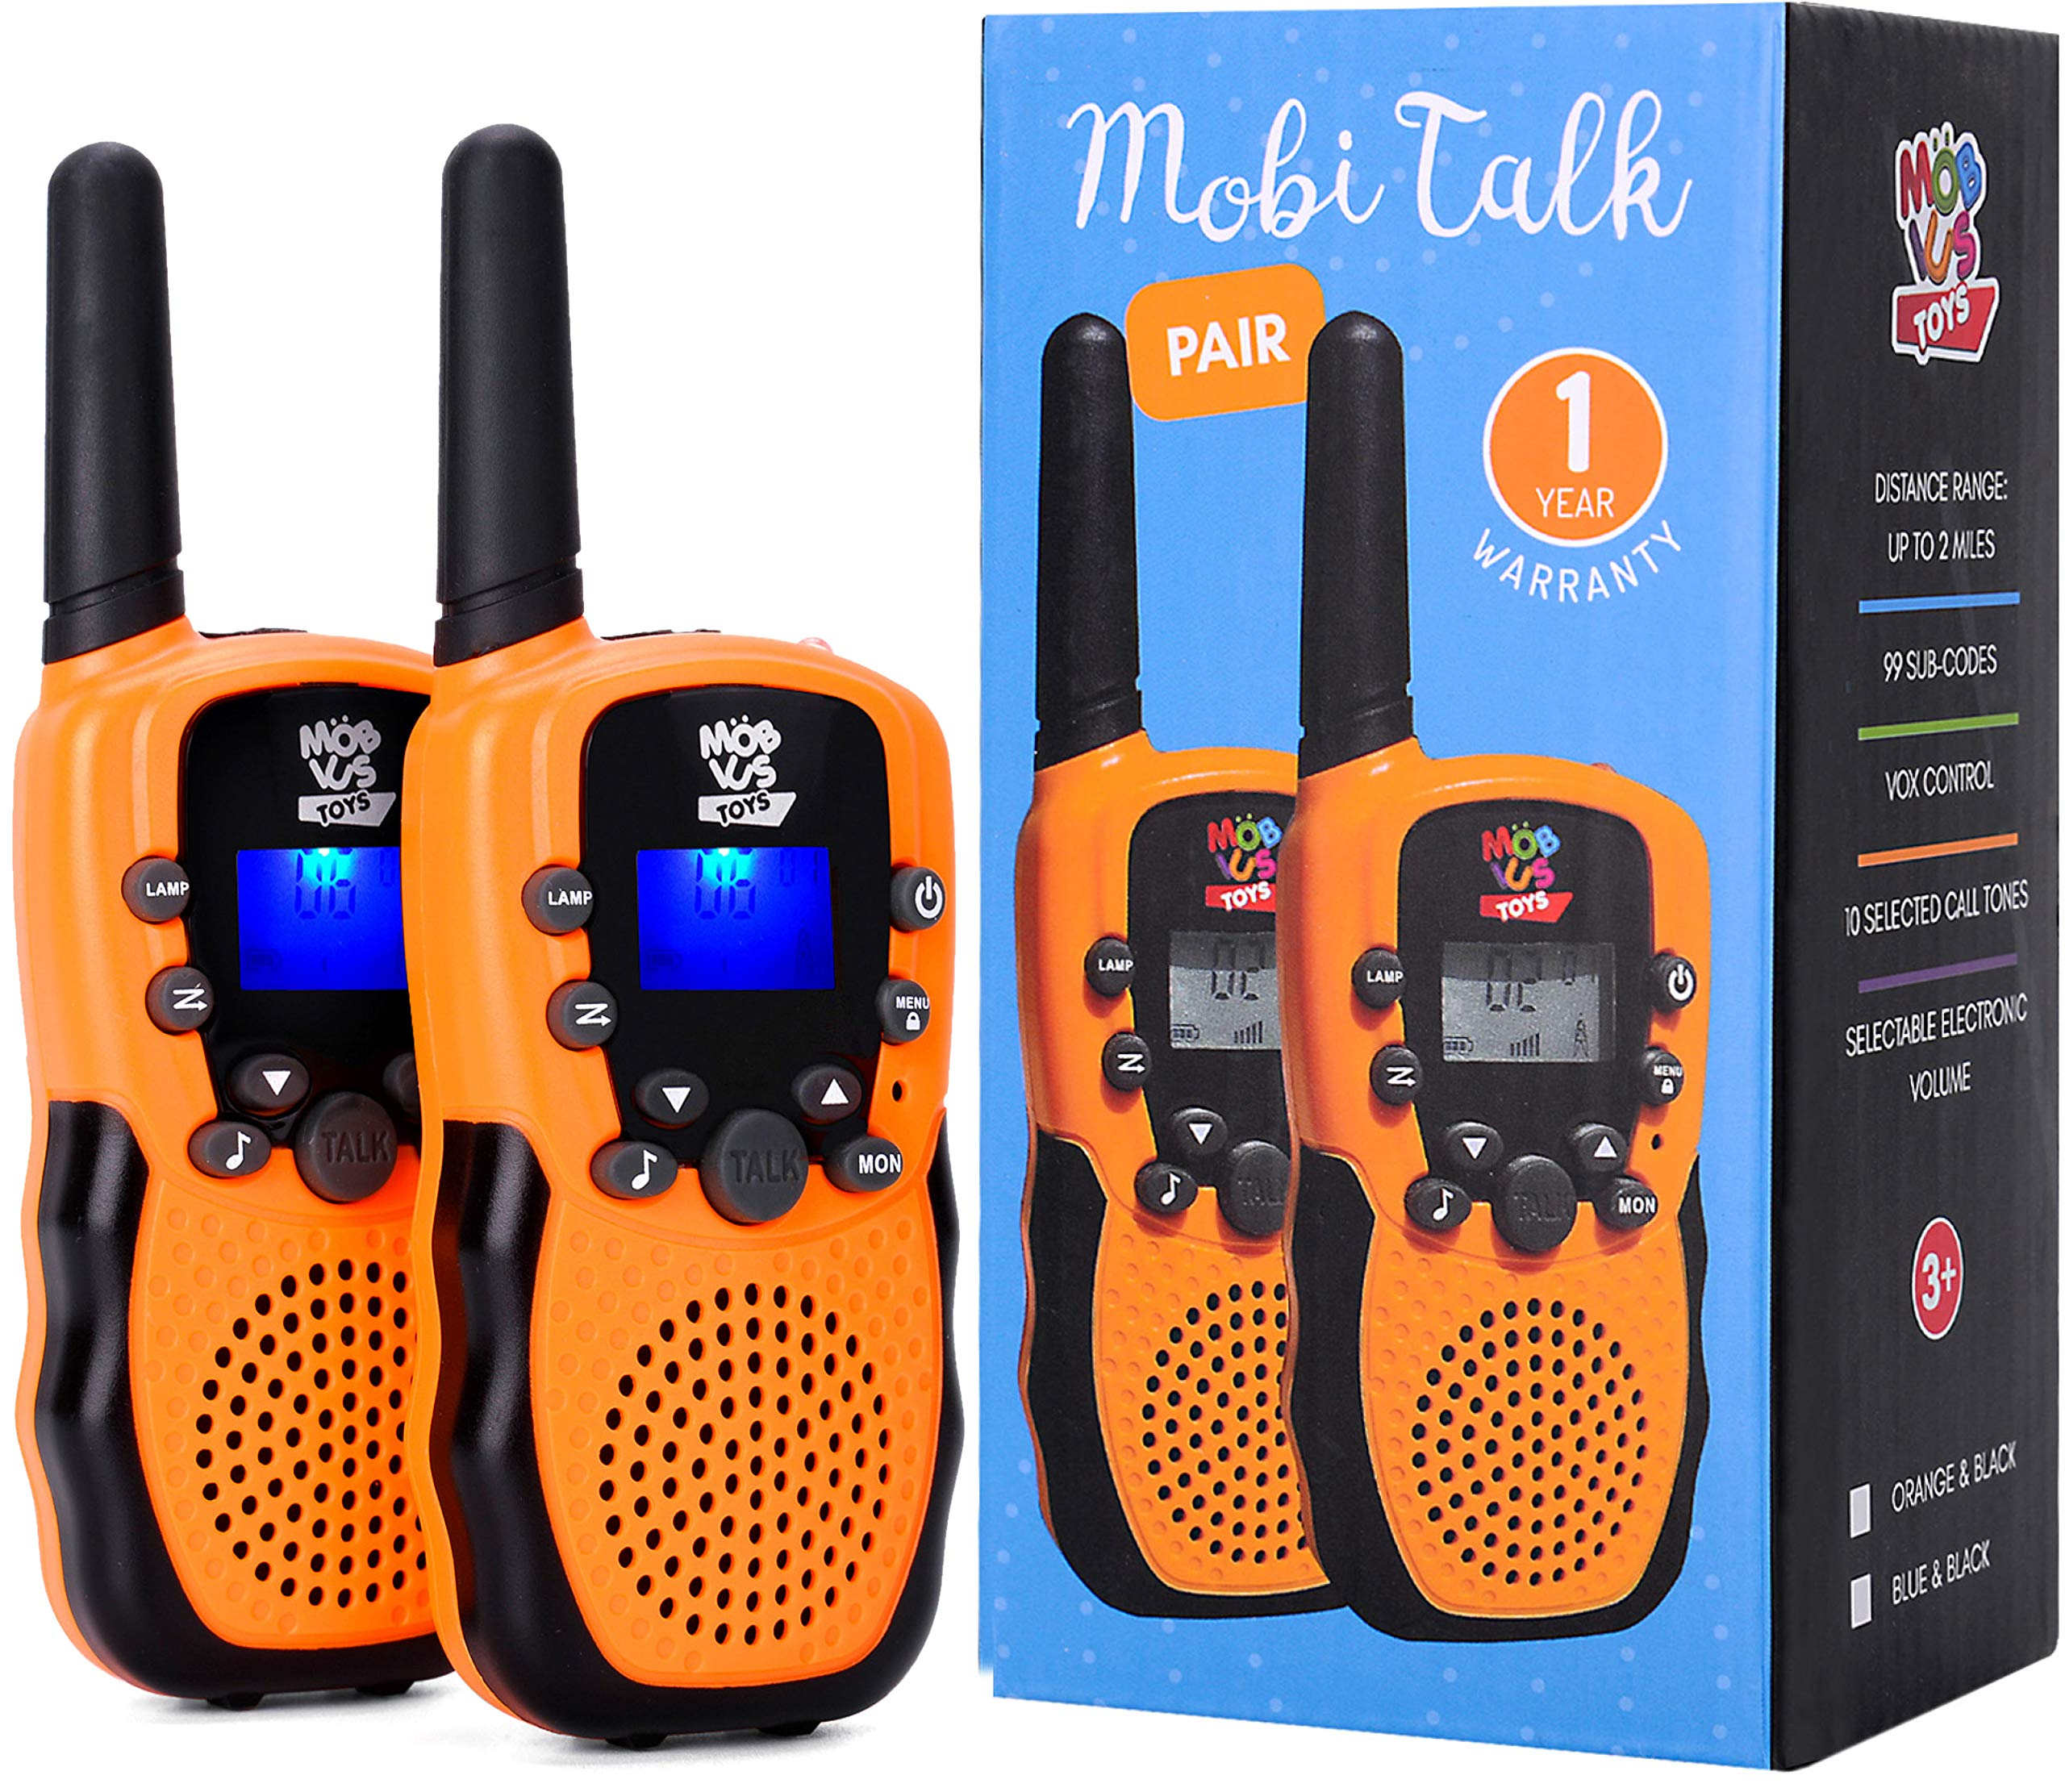 Walkie Talkies for Kids - (Vox Box) Voice Activated Walkie Talkies Toy for Kids, Two Way Radios Pair for Boys & Girls, Limited Edition Color Best Gift Long Range 3+ Miles Children's Walkie Talkie Set by MOBIUS Toys (Image #8)